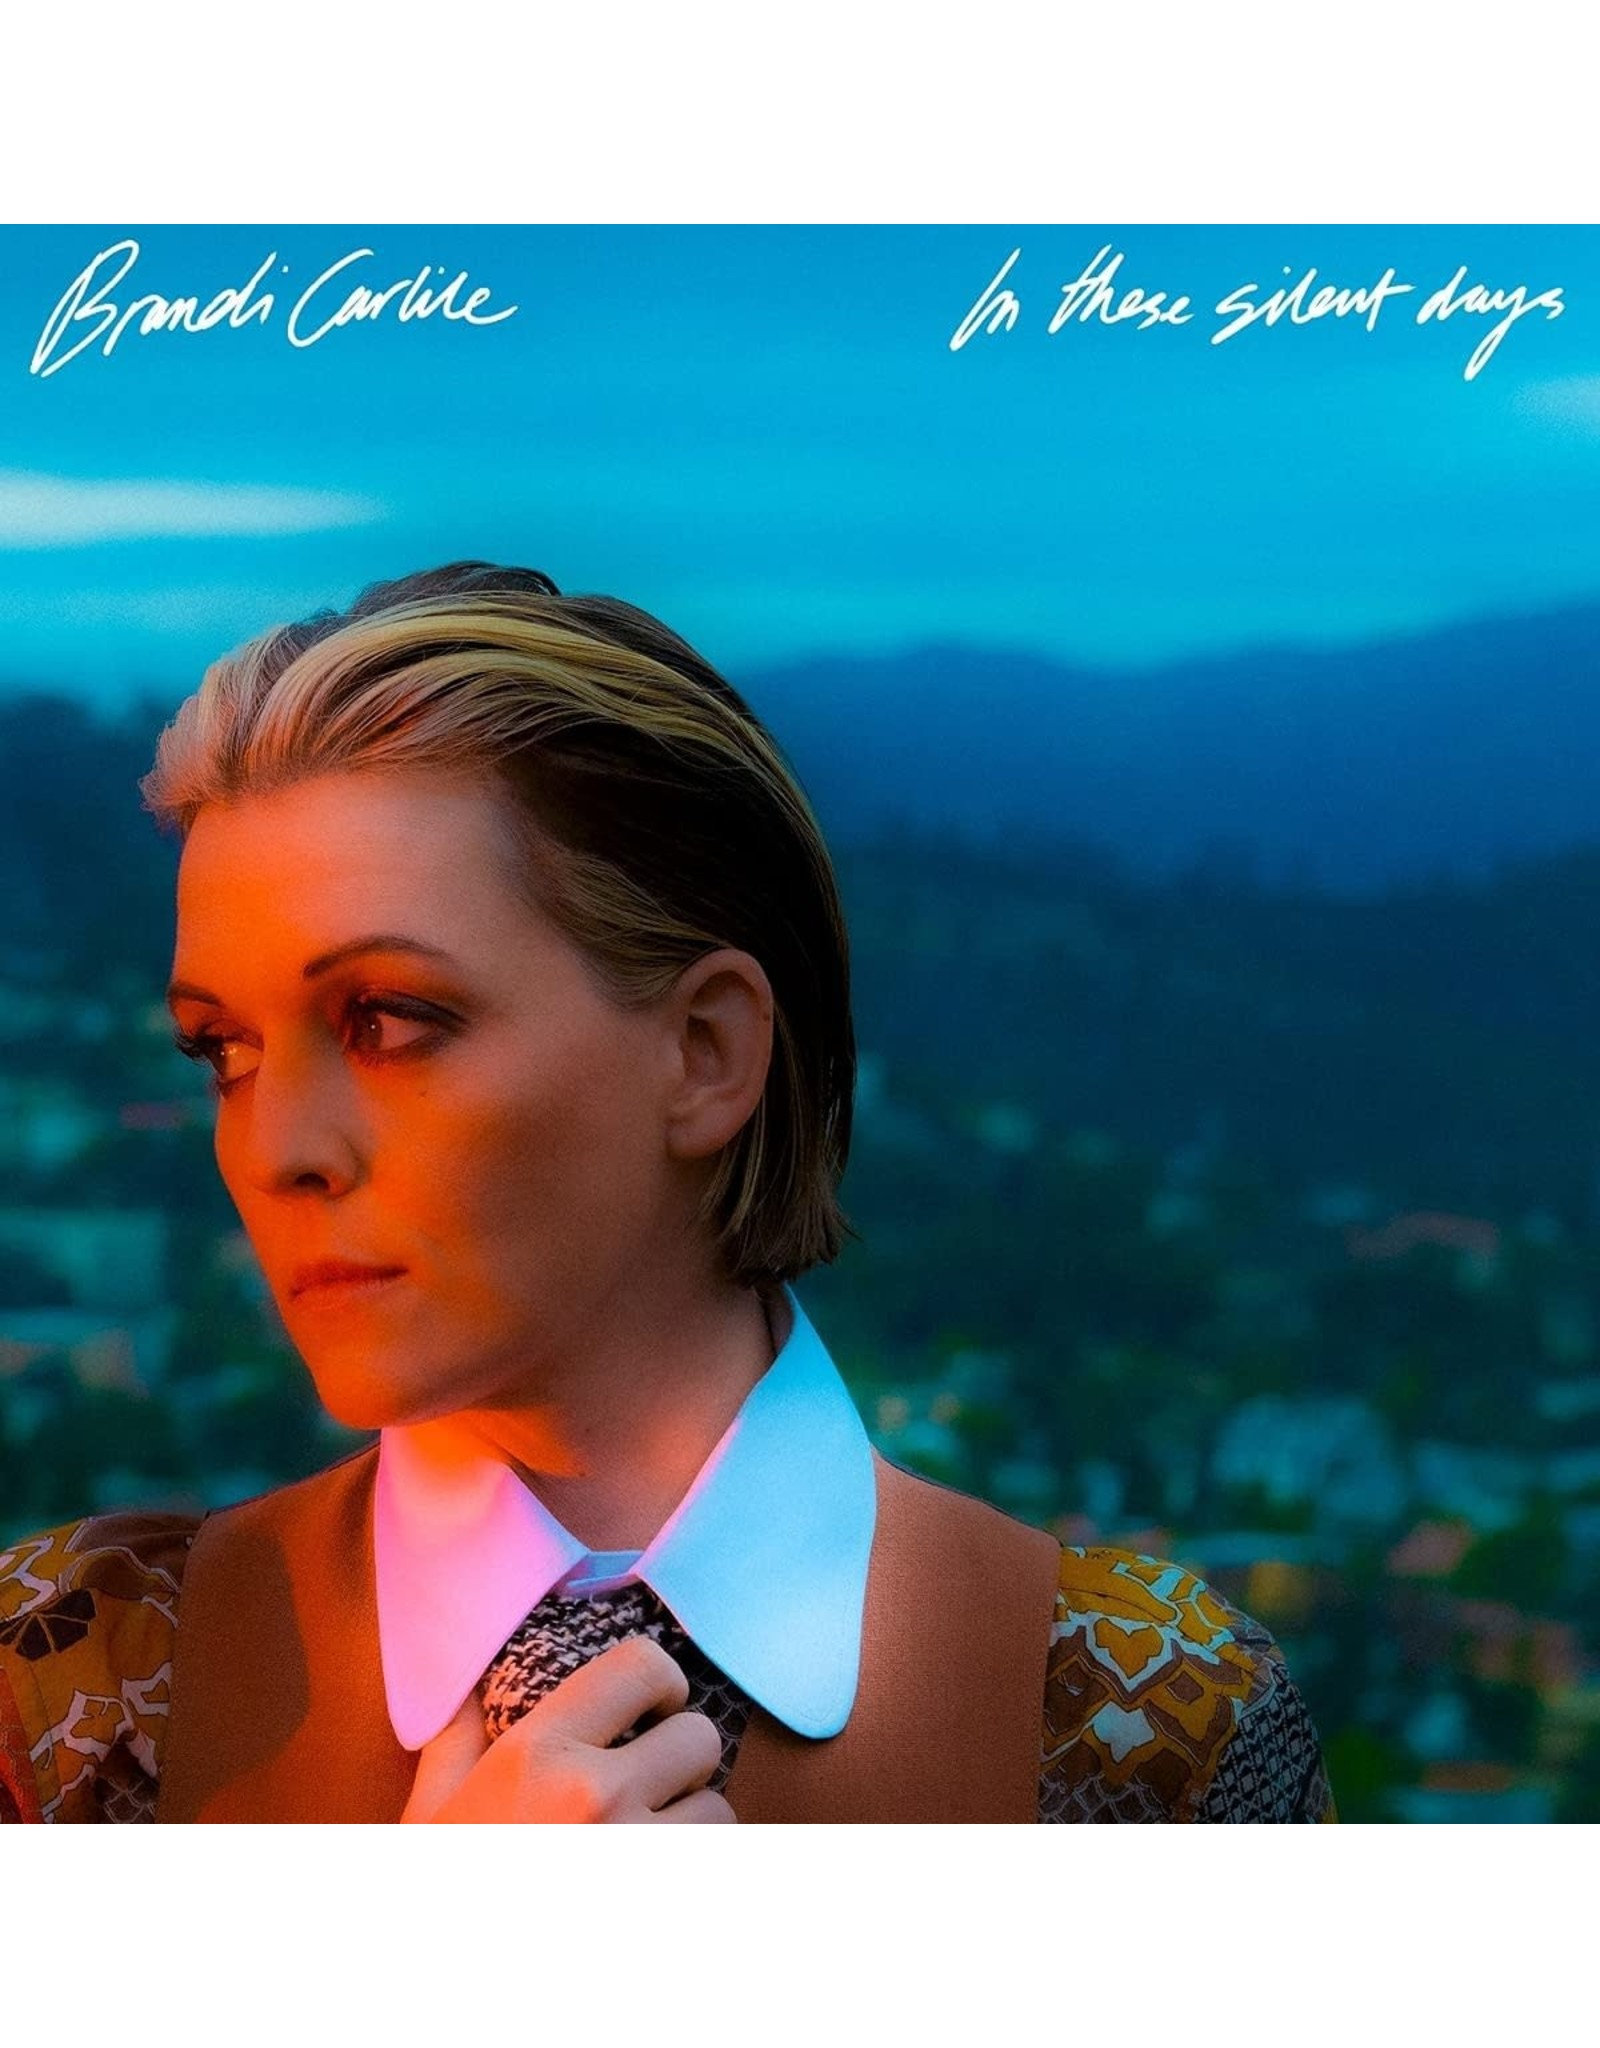 Brandi Carlile - In These Silent Days (Exclusive Gold Vinyl)